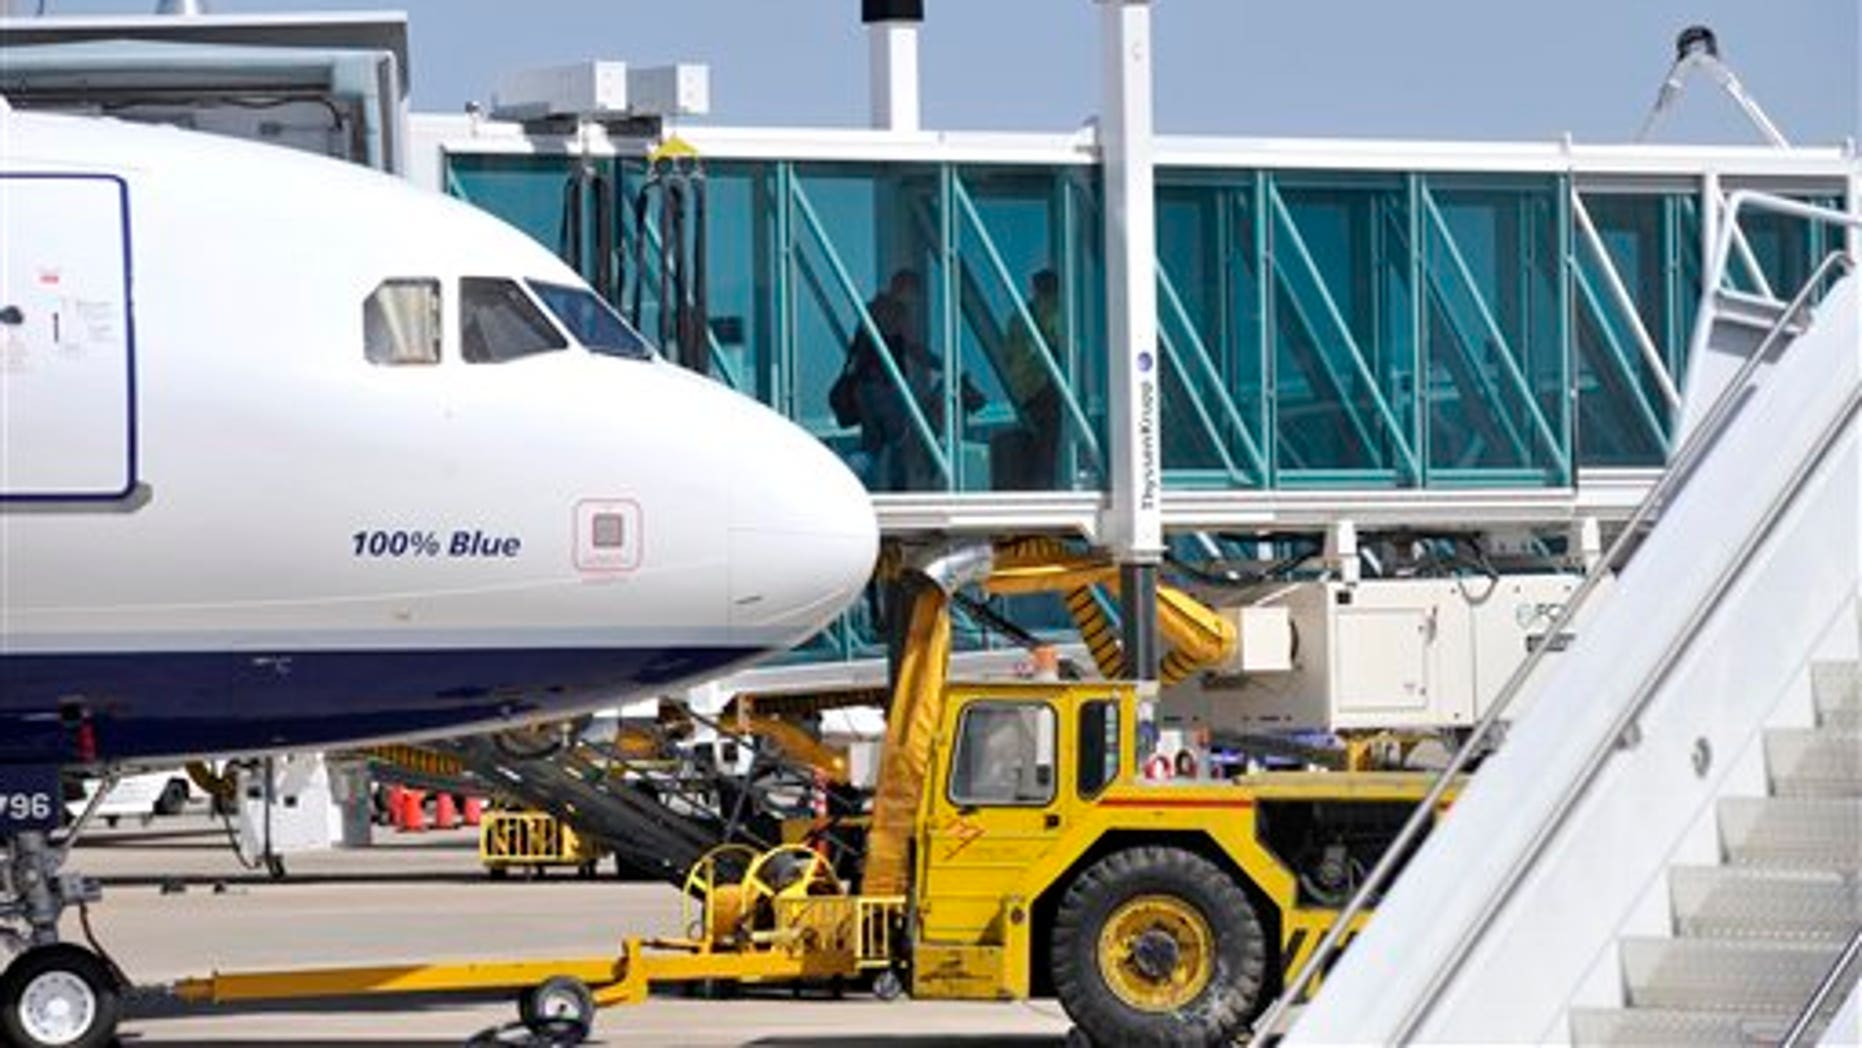 March 27, 2012: Passengers depart from JetBlue flight 191 at Amarillo Rick Husband International Airport in Amarillo, Texas after an unruly pilot caused the flight to make an emergency landing.